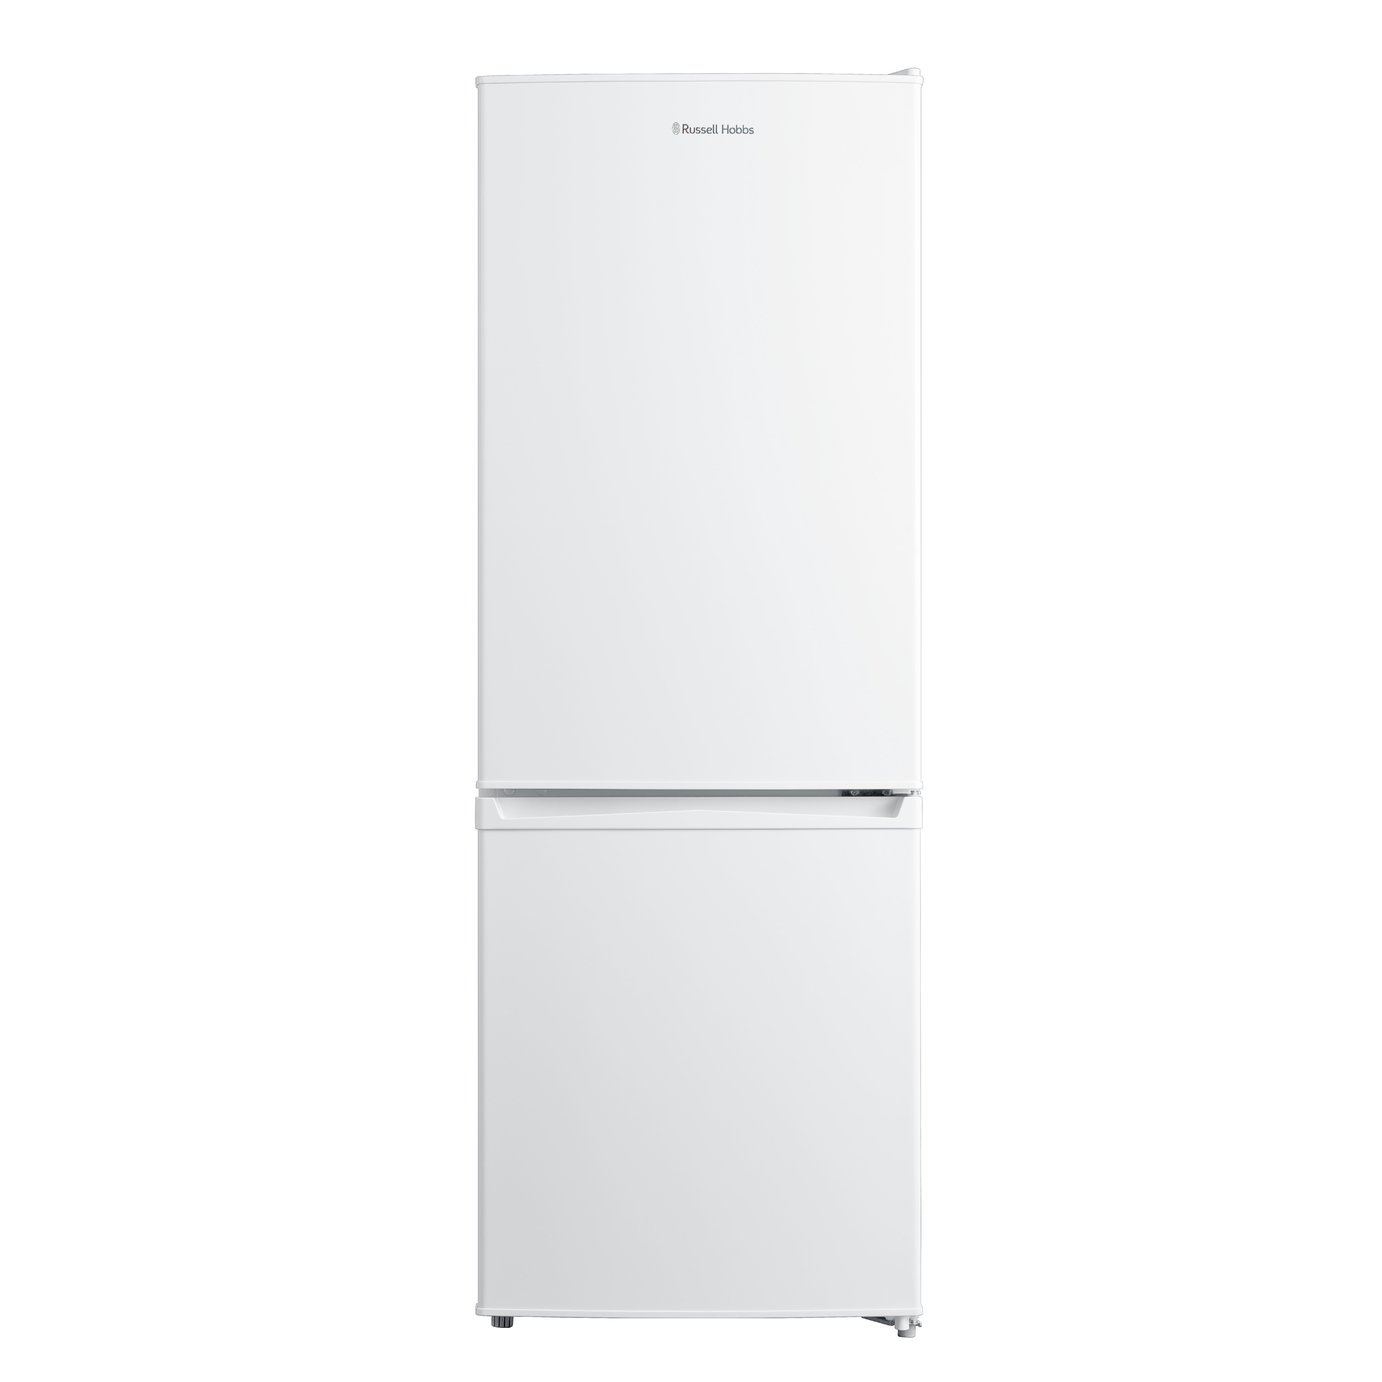 Russell Hobbs RH50FF144W Fridge Freezer - White. from Russell hobbs